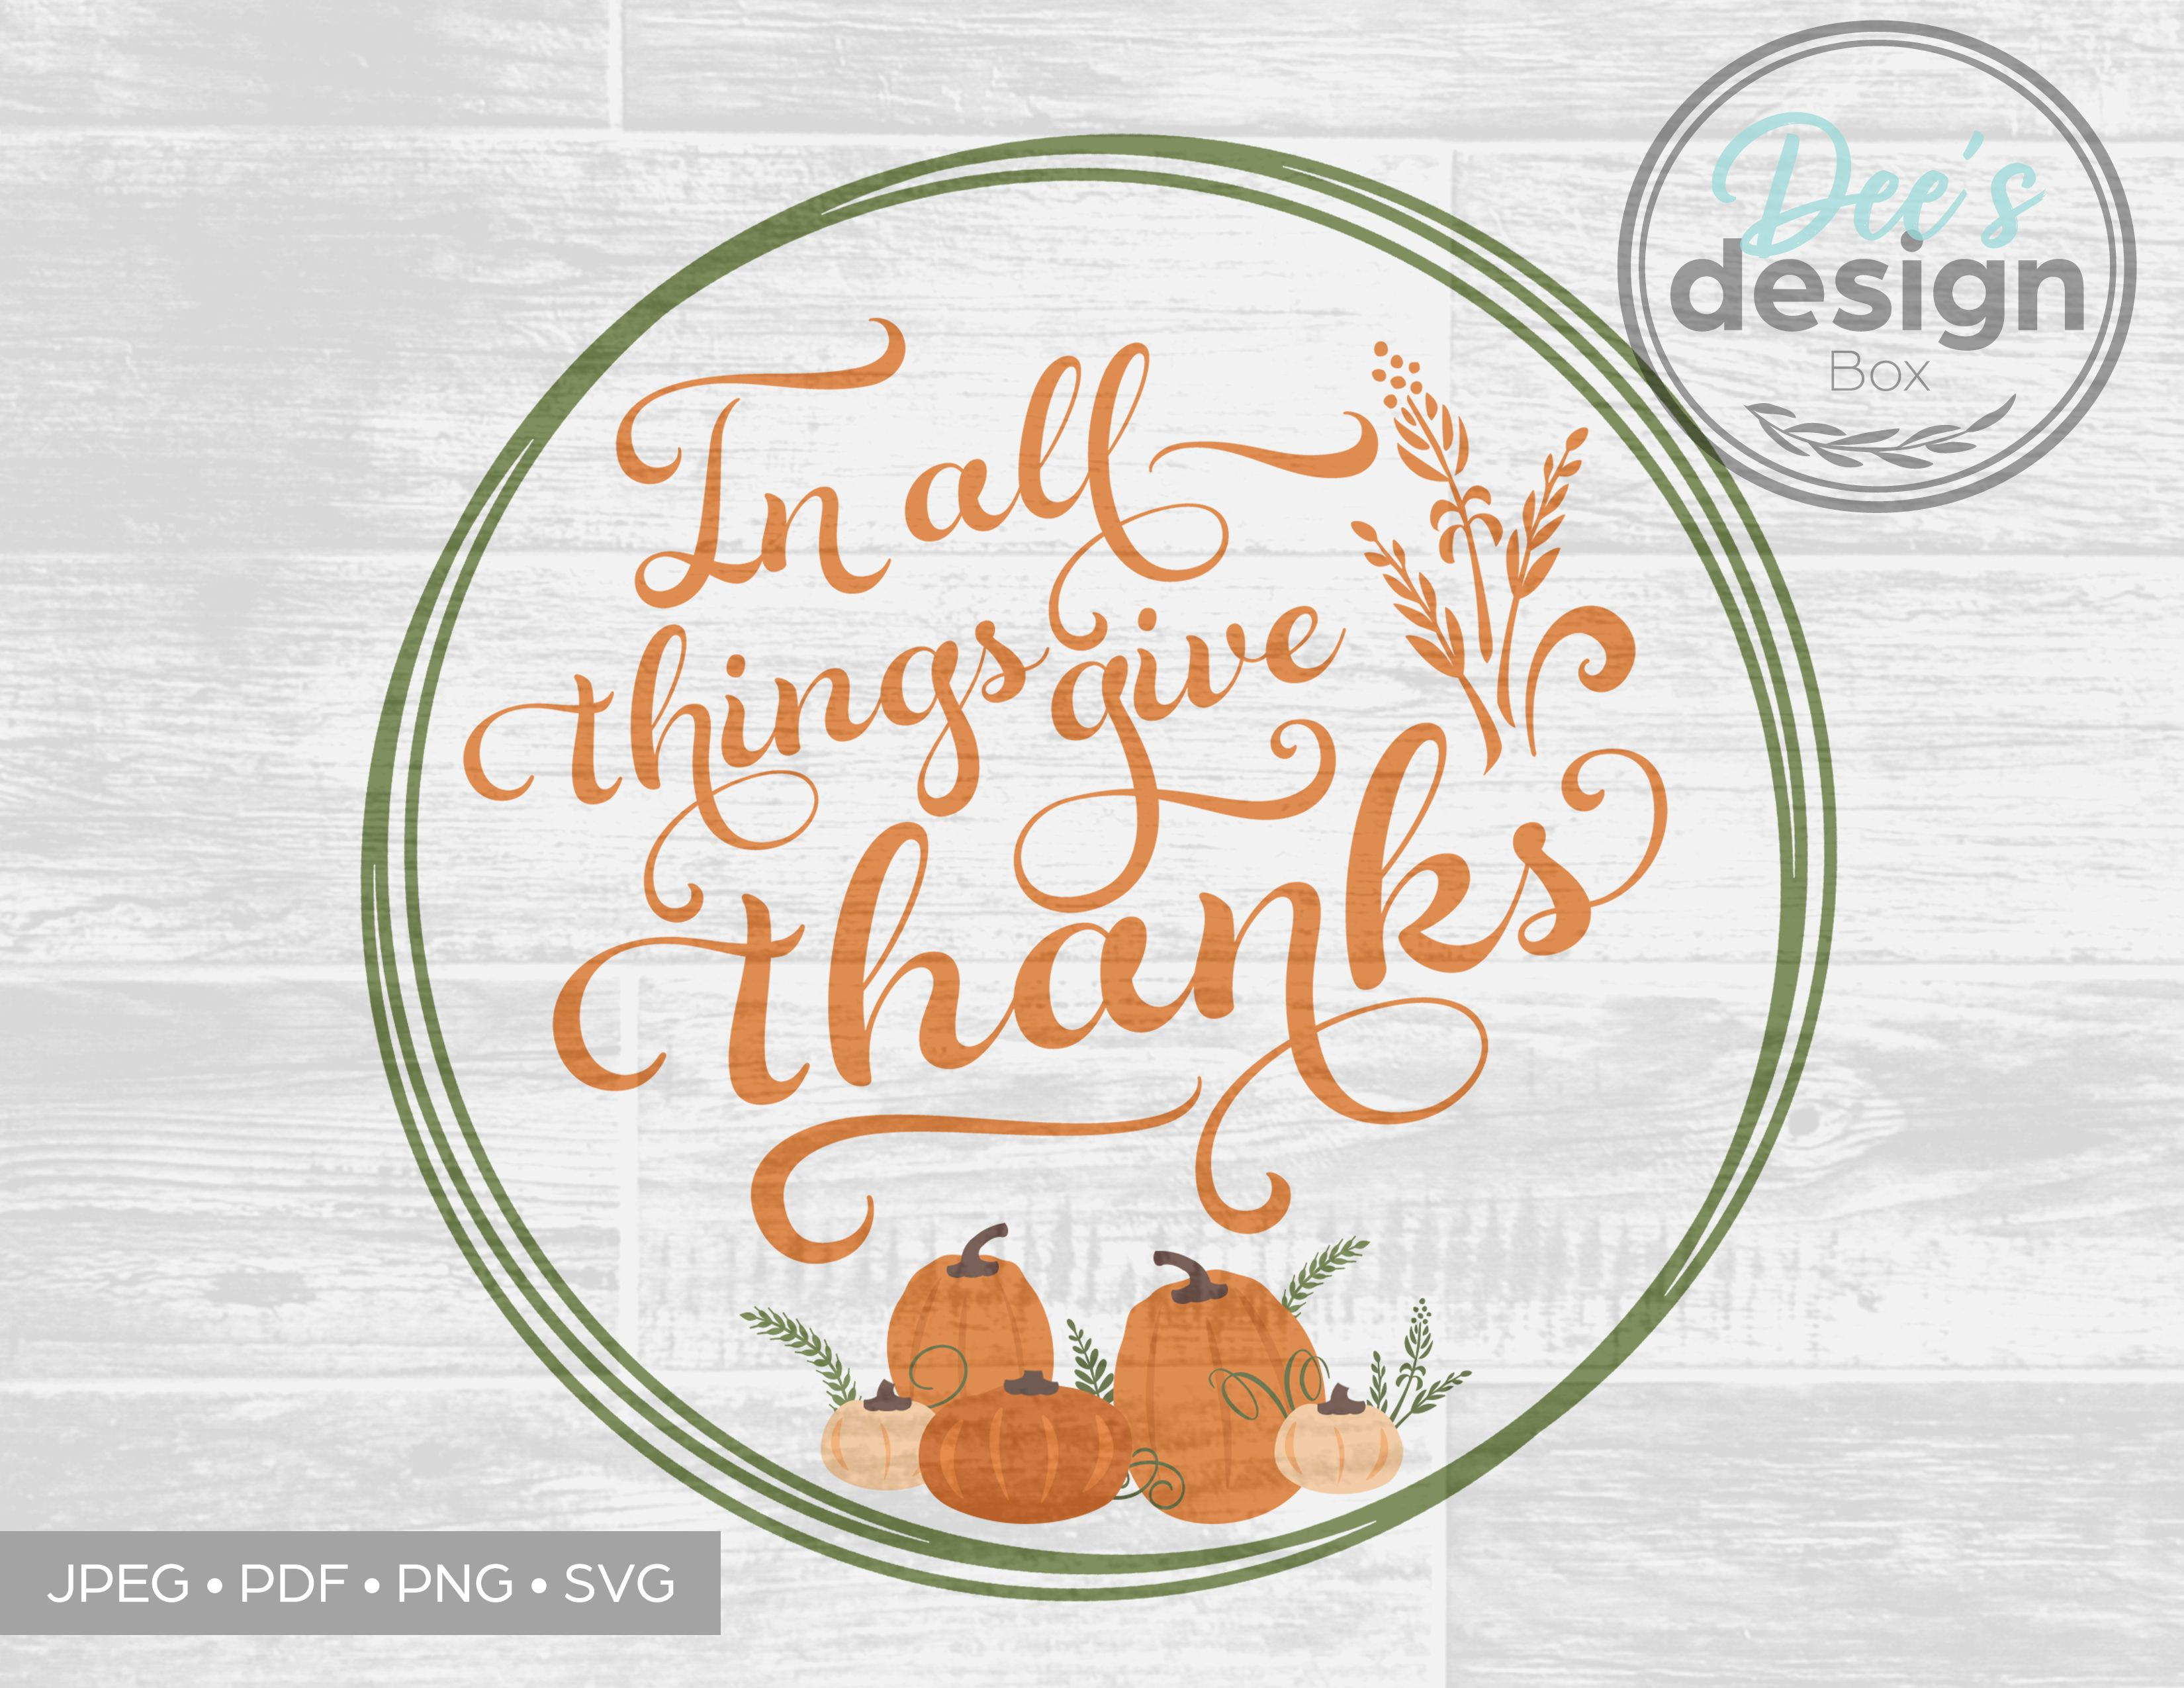 38+ In all things give thanks clipart ideas in 2021